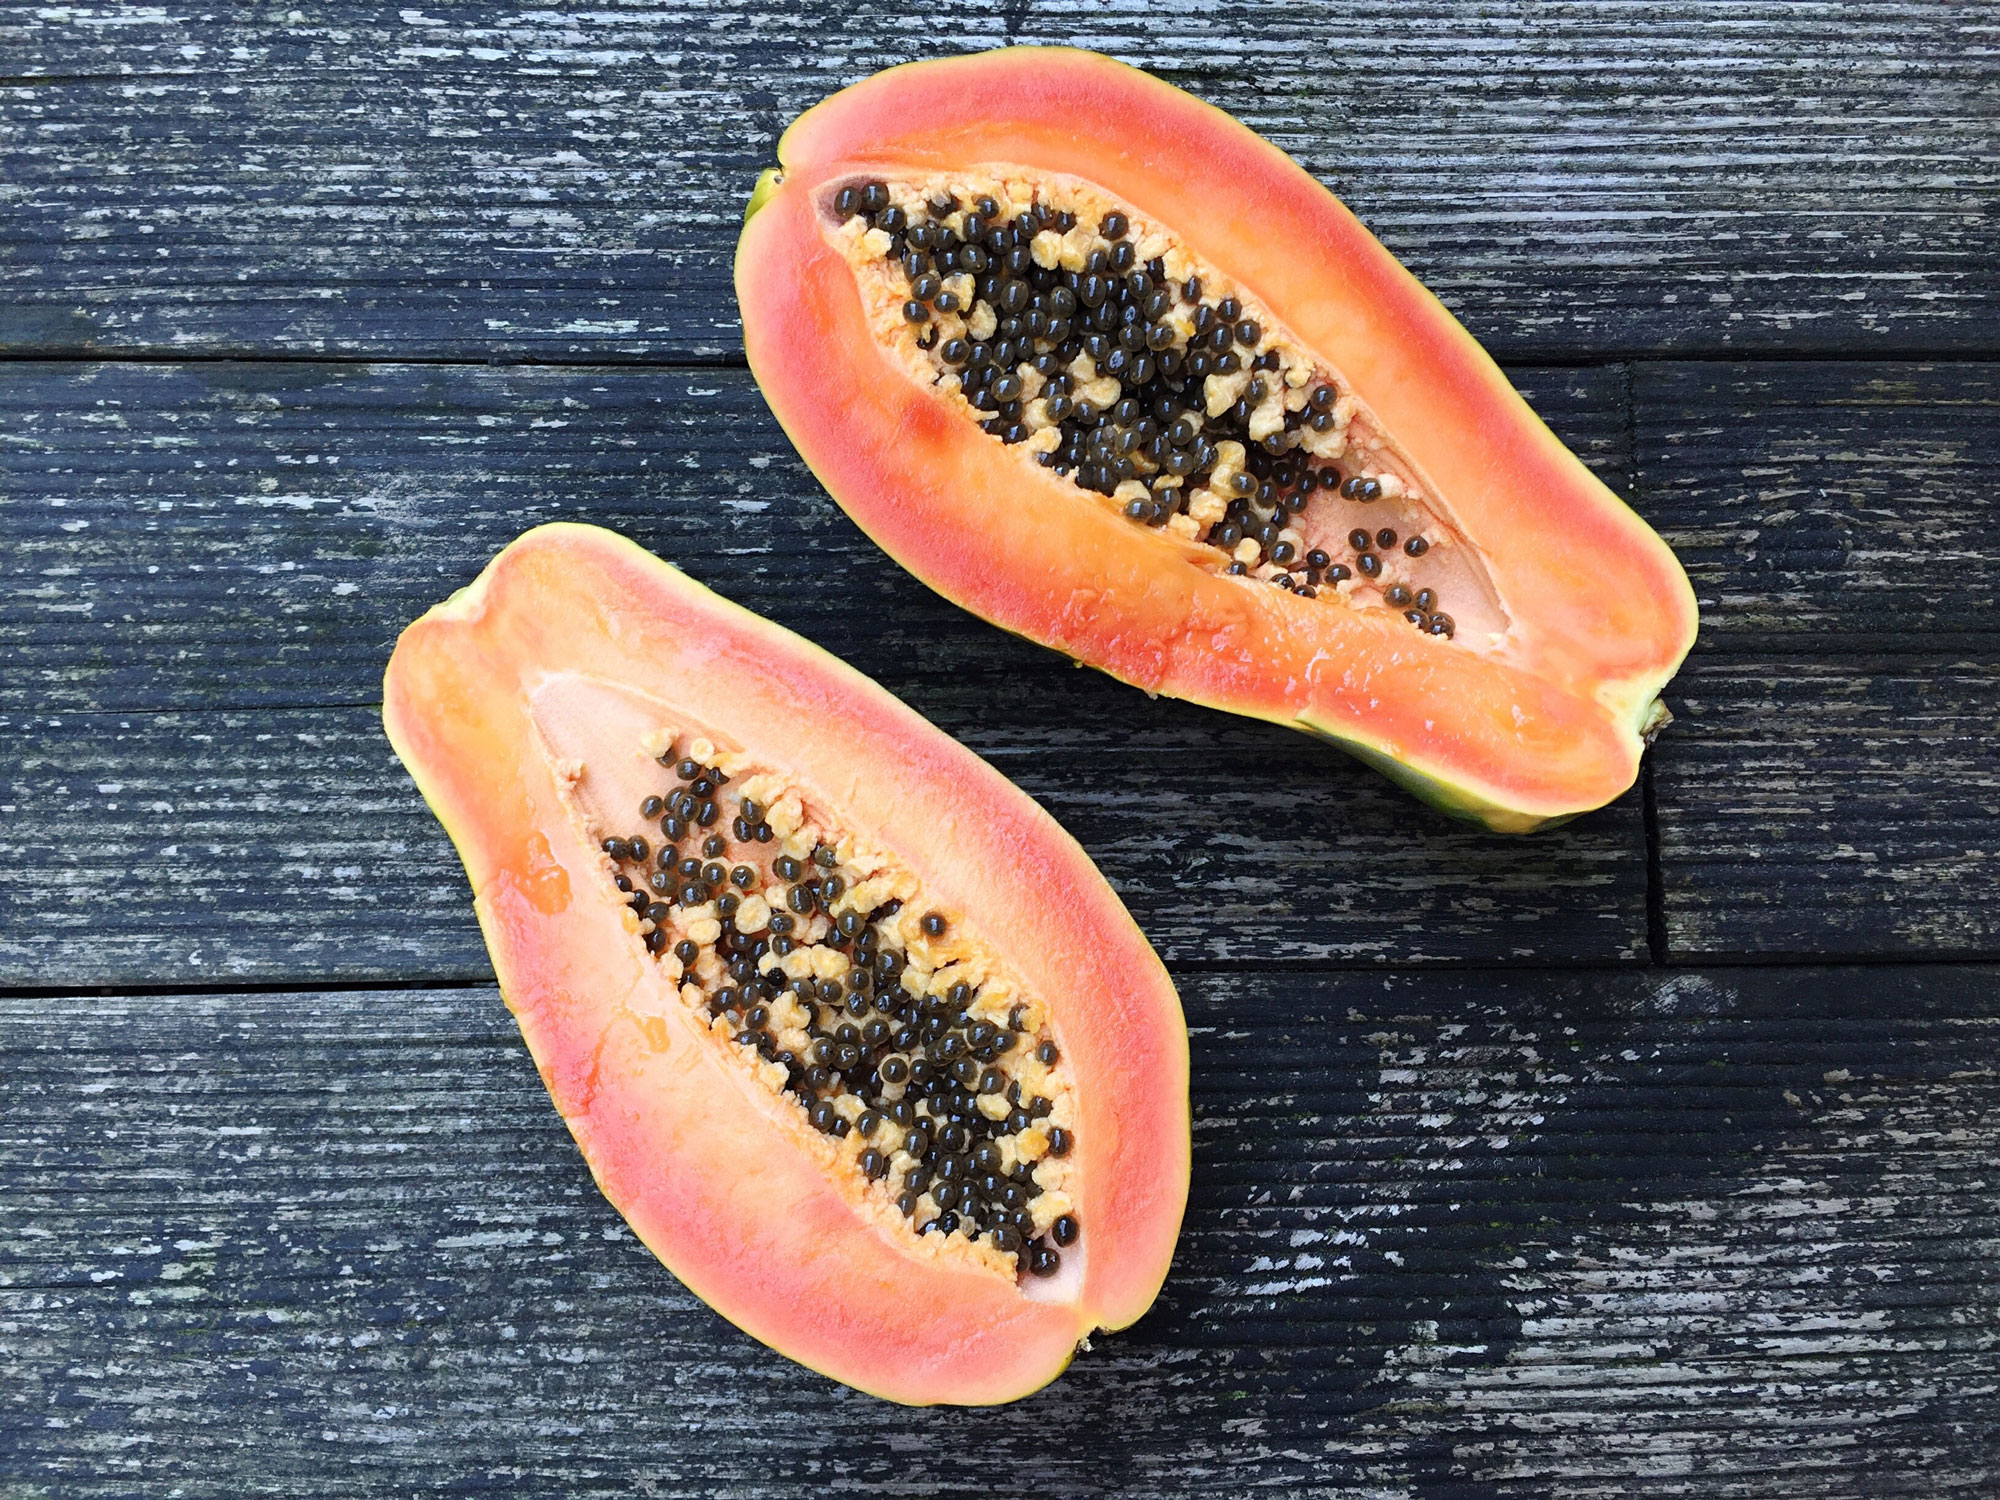 Think Papaya Smells Awful? There's a Trick to Make It Taste Better